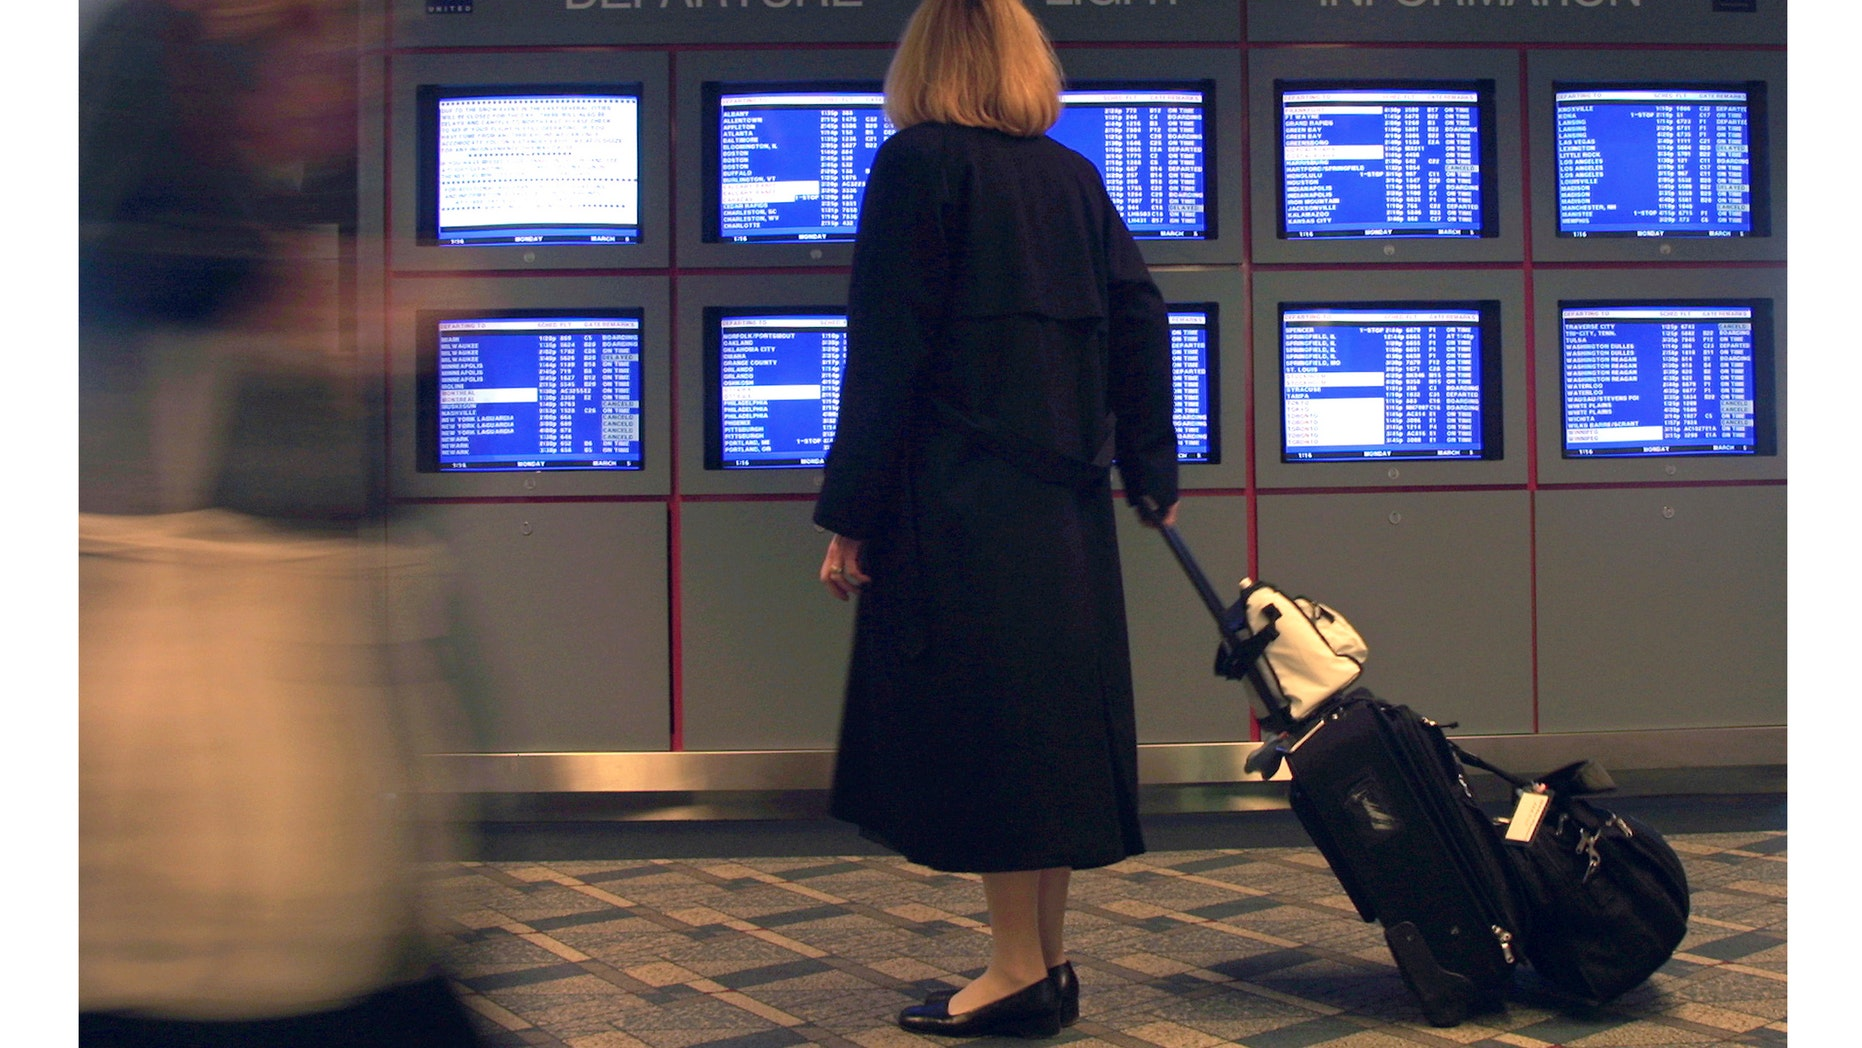 """386325 02: A United Airlines flight attendant stops to look at a departure flight information display March 5, 2001 at O''Hare International Airport in Chicago, IL. Hundreds of airline flights in and out of the Northeast United States were canceled as a """"Nor''easter"""" winter storm threatened to blast the region with snow and ice. (Photo by Tim Boyle/Newsmakers)"""